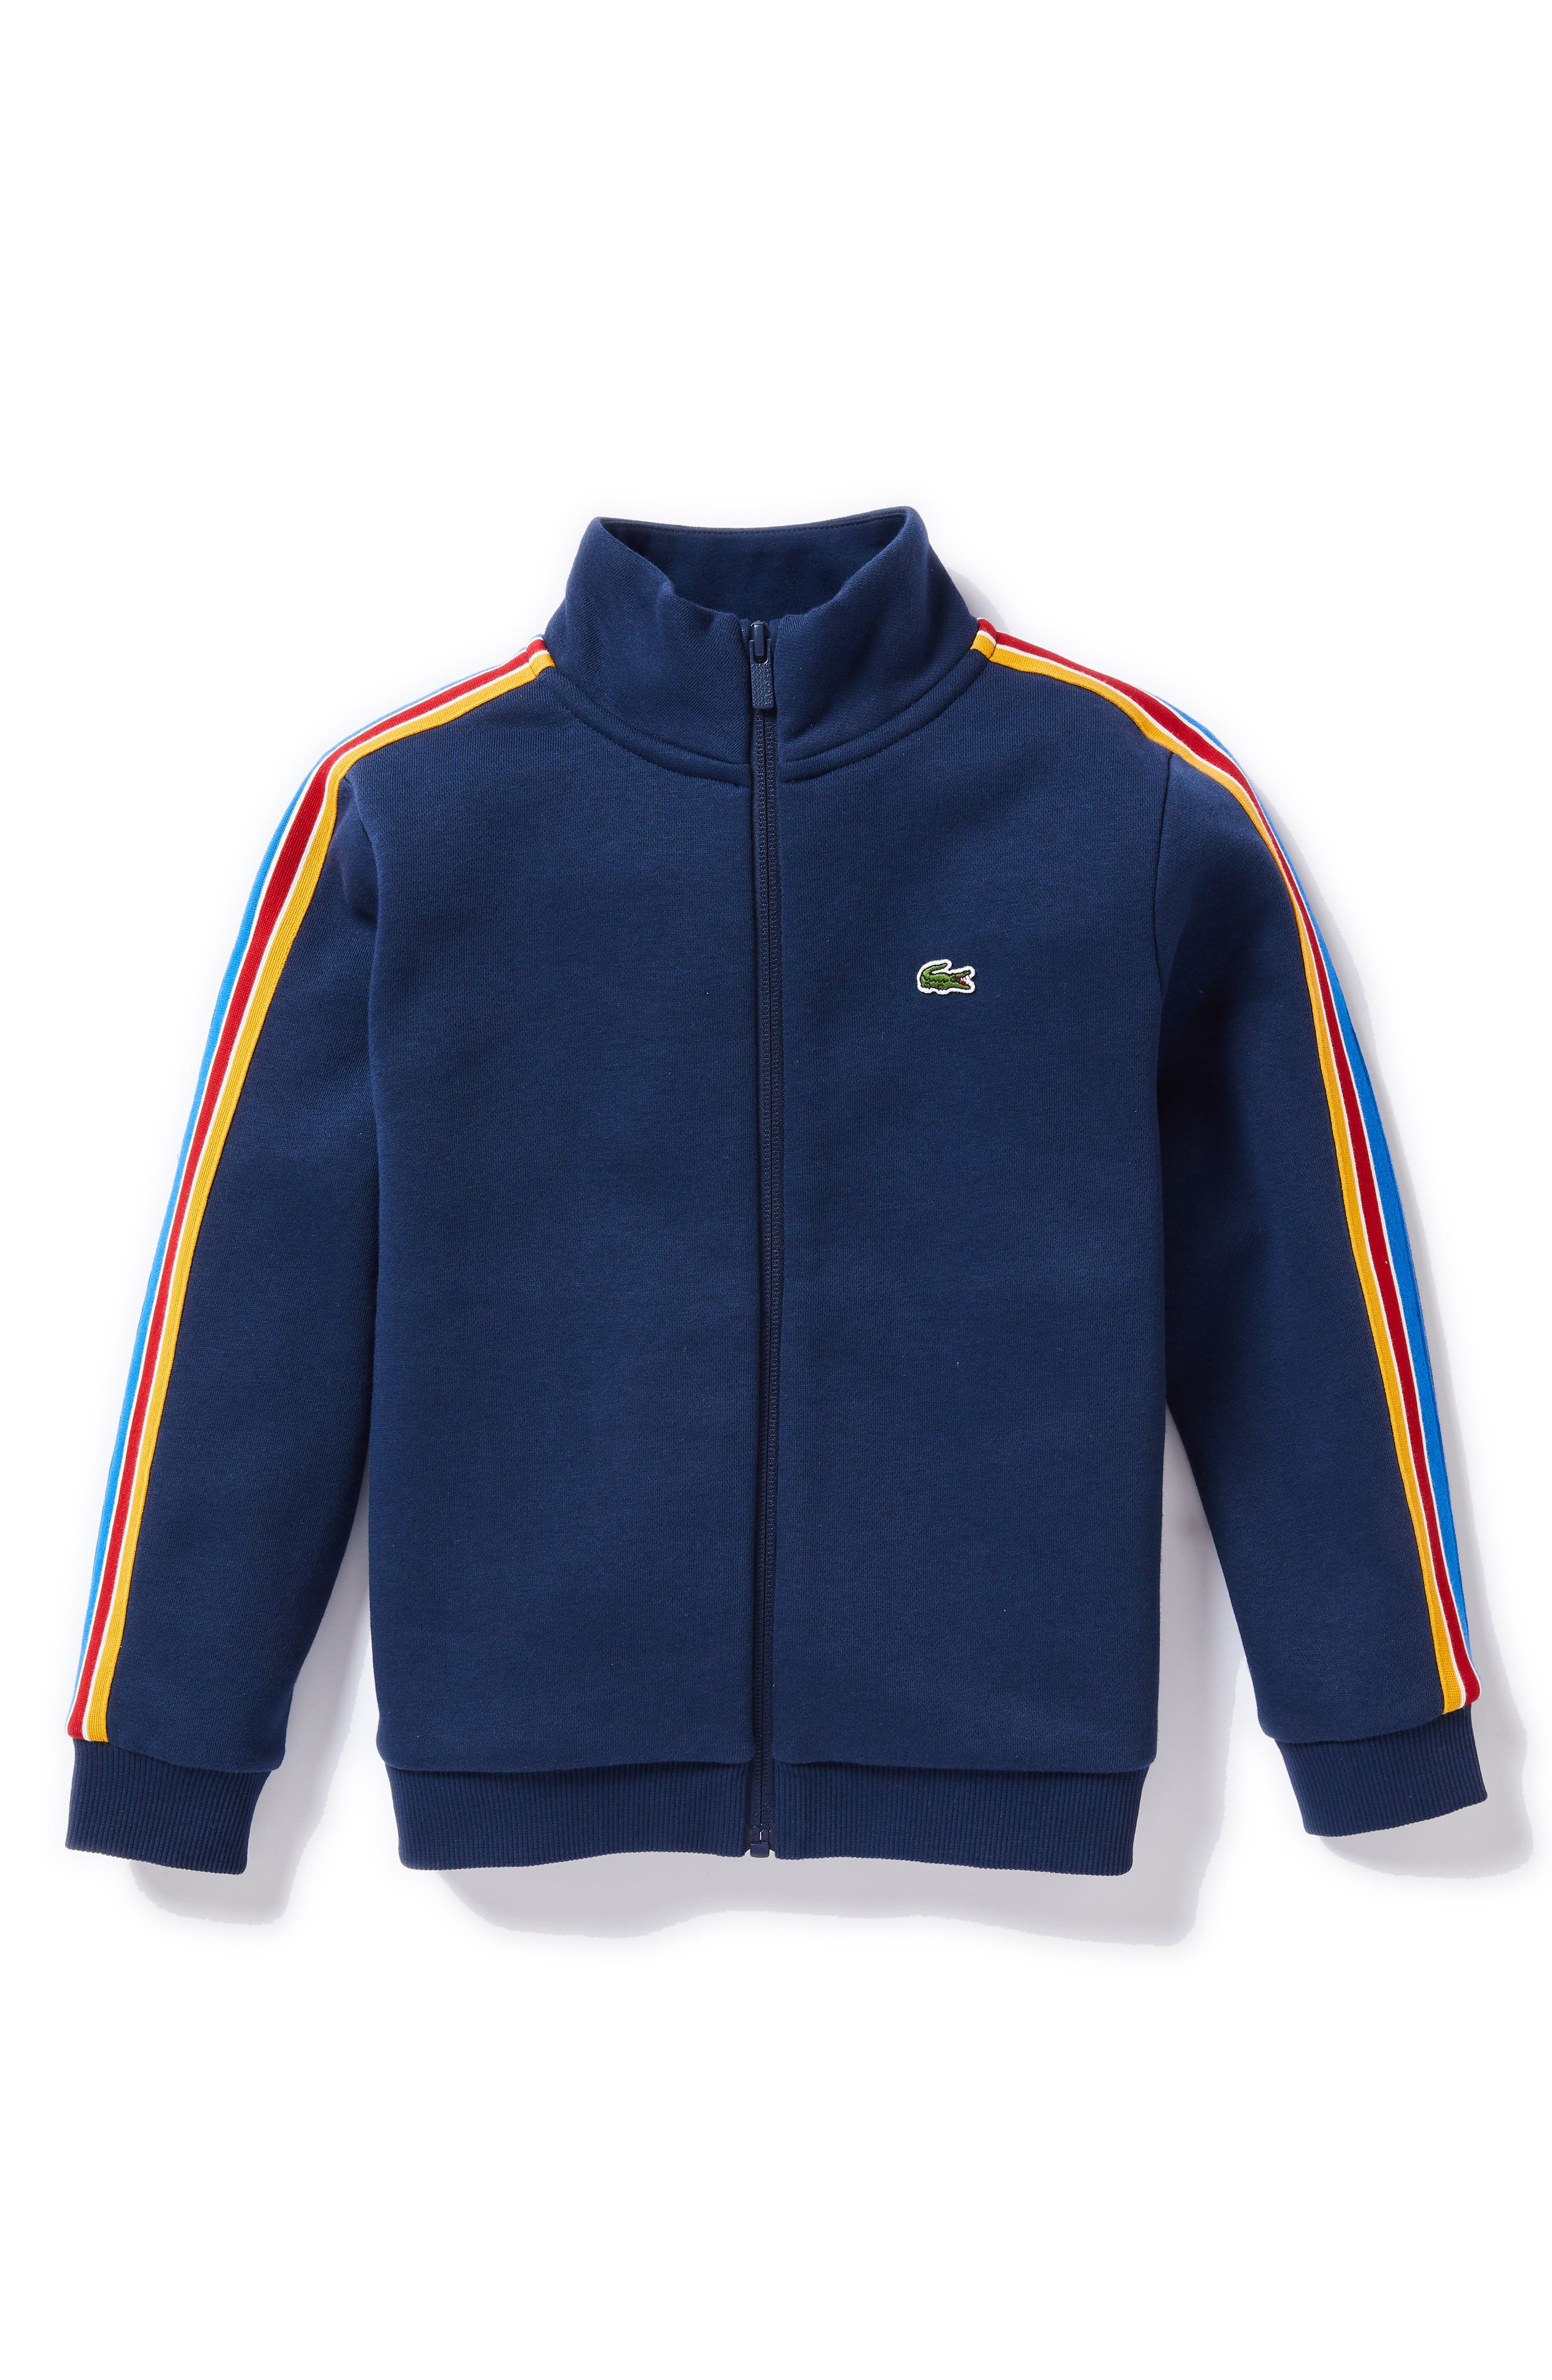 Athleisure Zip Jacket,                         Main,                         color, NAVY BLUE